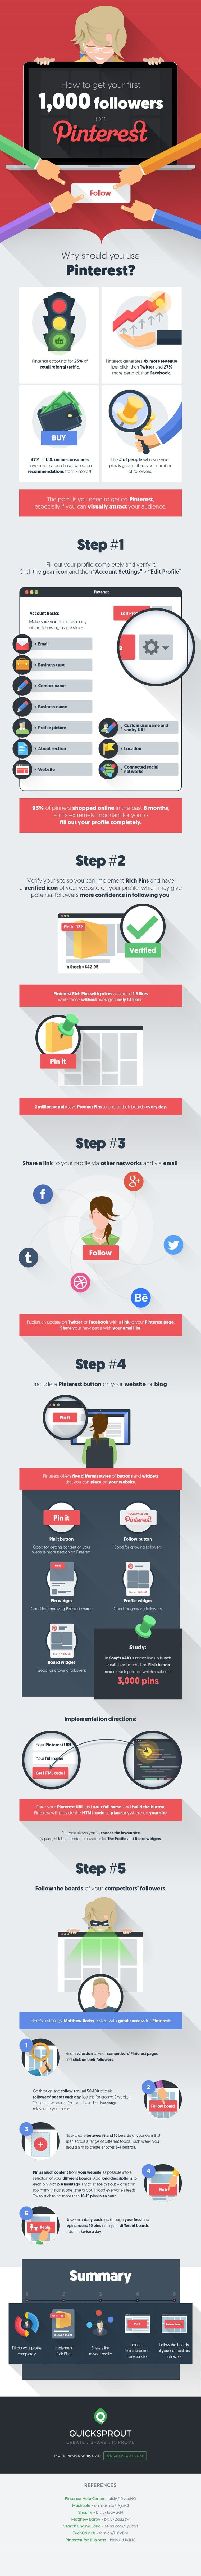 How to Get Your First 1000 Followers on Pinterest | SEJ